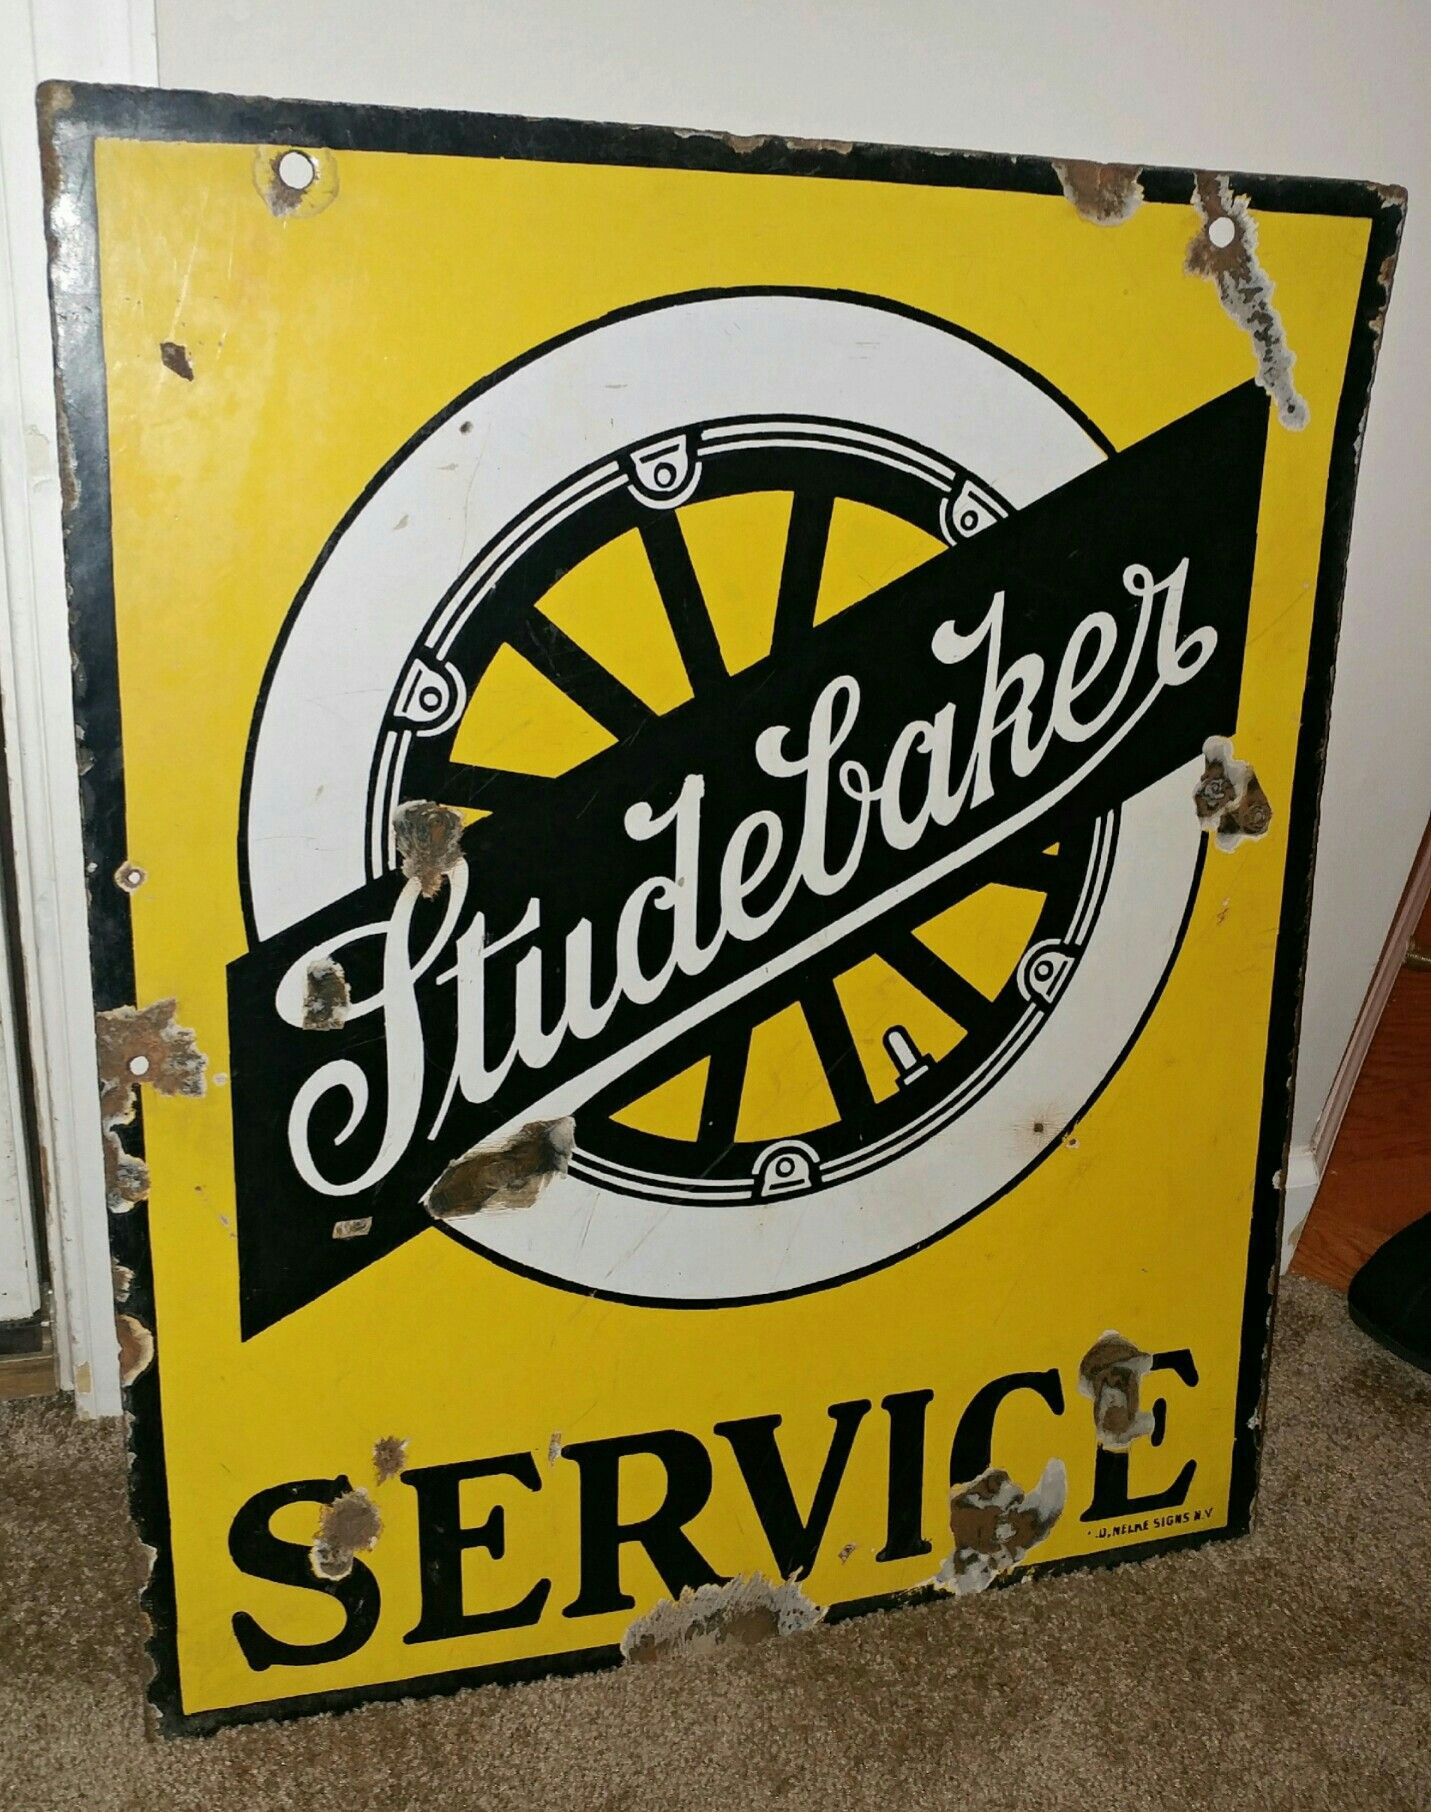 LARGE ANTIQUE VINTAGE STYLE CAST IRON ADVERTISING SIGN *LAND ROVER* WALL PLAQUE